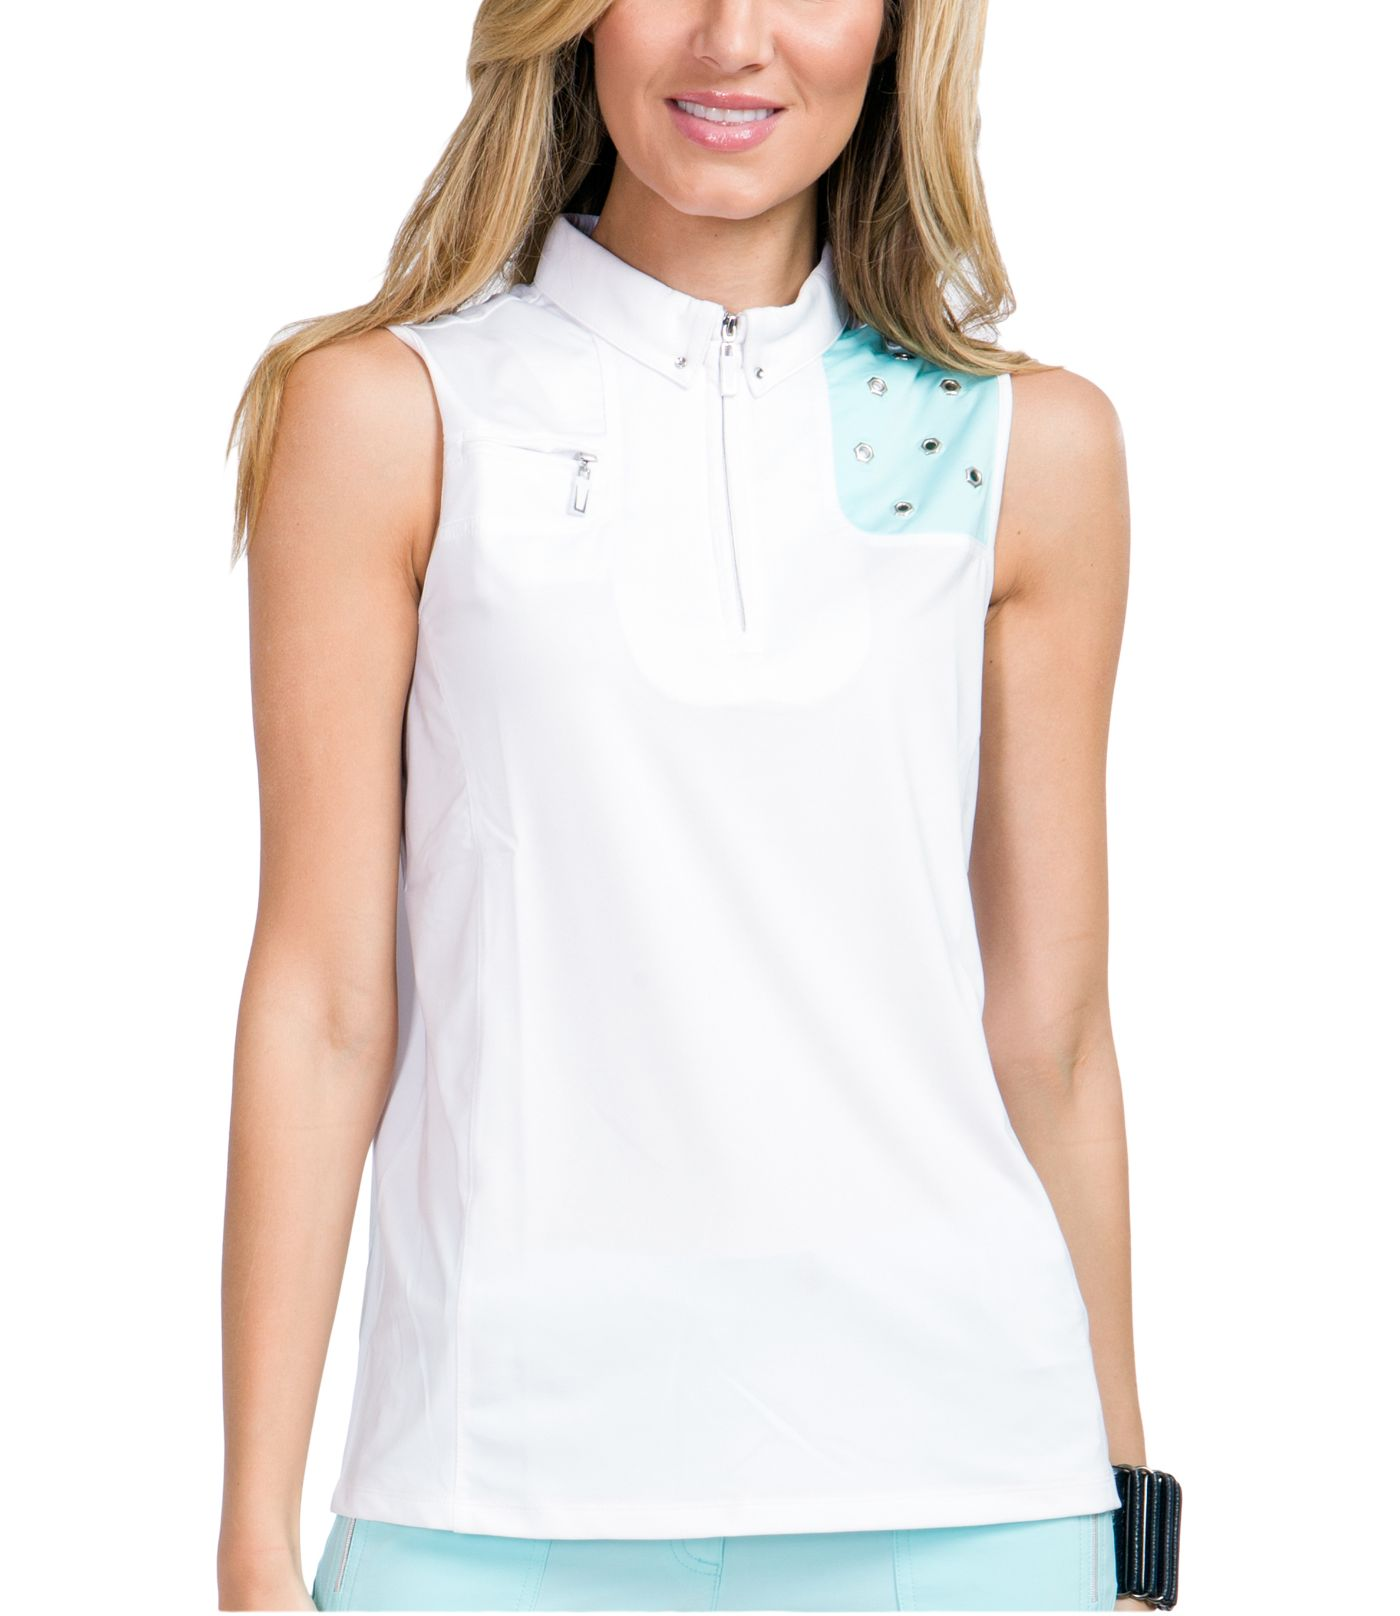 Jamie Sadock Women's Color Block Sleeveless Golf Top